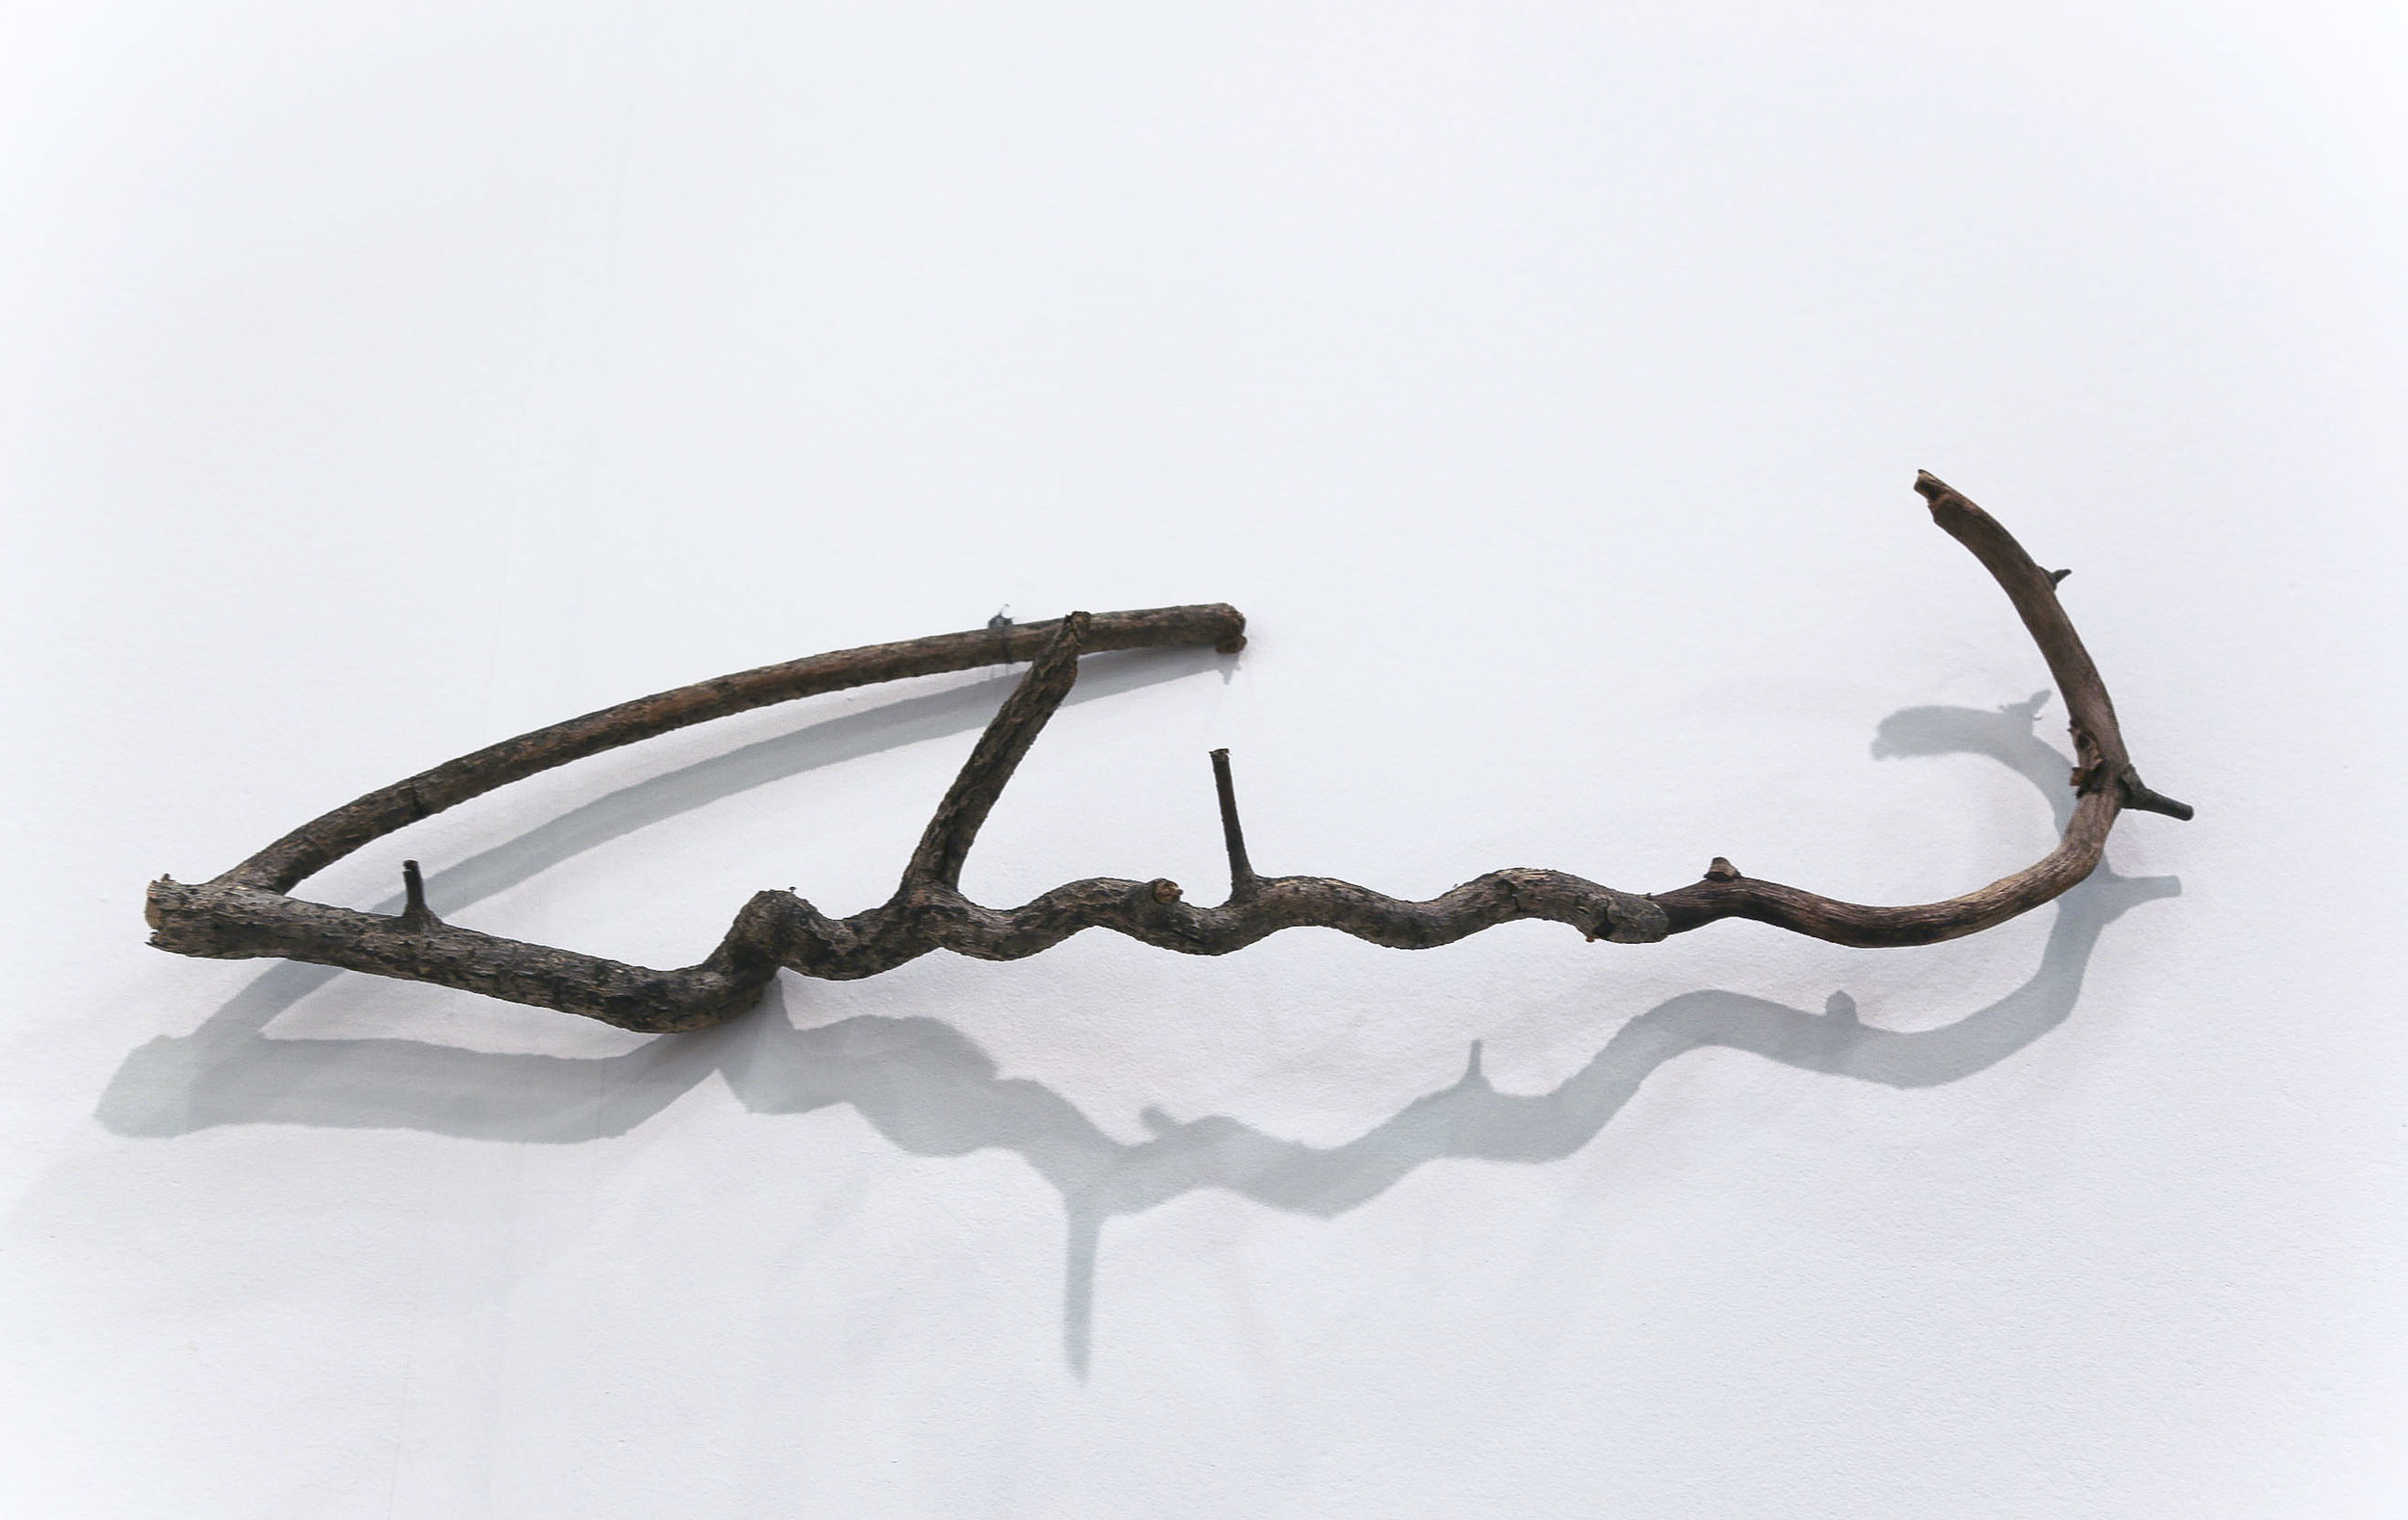 Script: Arabic   2013  Vine  Description:  A found vine acquired in 2013 as part of The Forever Museum archive during the height of islamophobia.